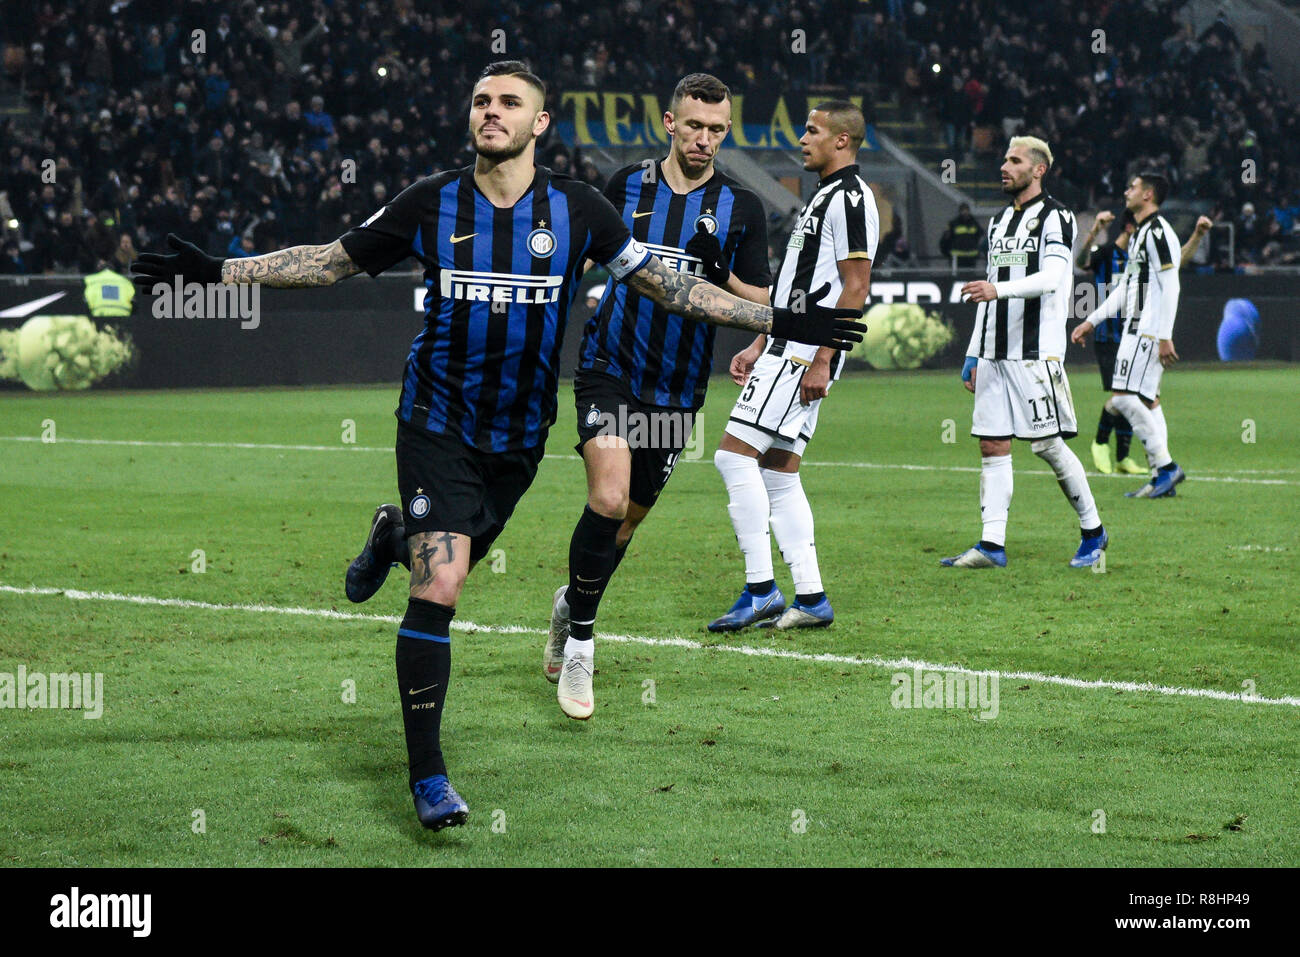 Milan, Italy. 15th Dec 2018. Forward Mauro Icardi (Inter) celebrates after scoring a goal during the Serie A football match, Inter Milan vs Udinese Calcio at San Siro Meazza Stadium in Milan, Italy on 15 December 2018 Credit: Piero Cruciatti/Alamy Live News - Stock Image